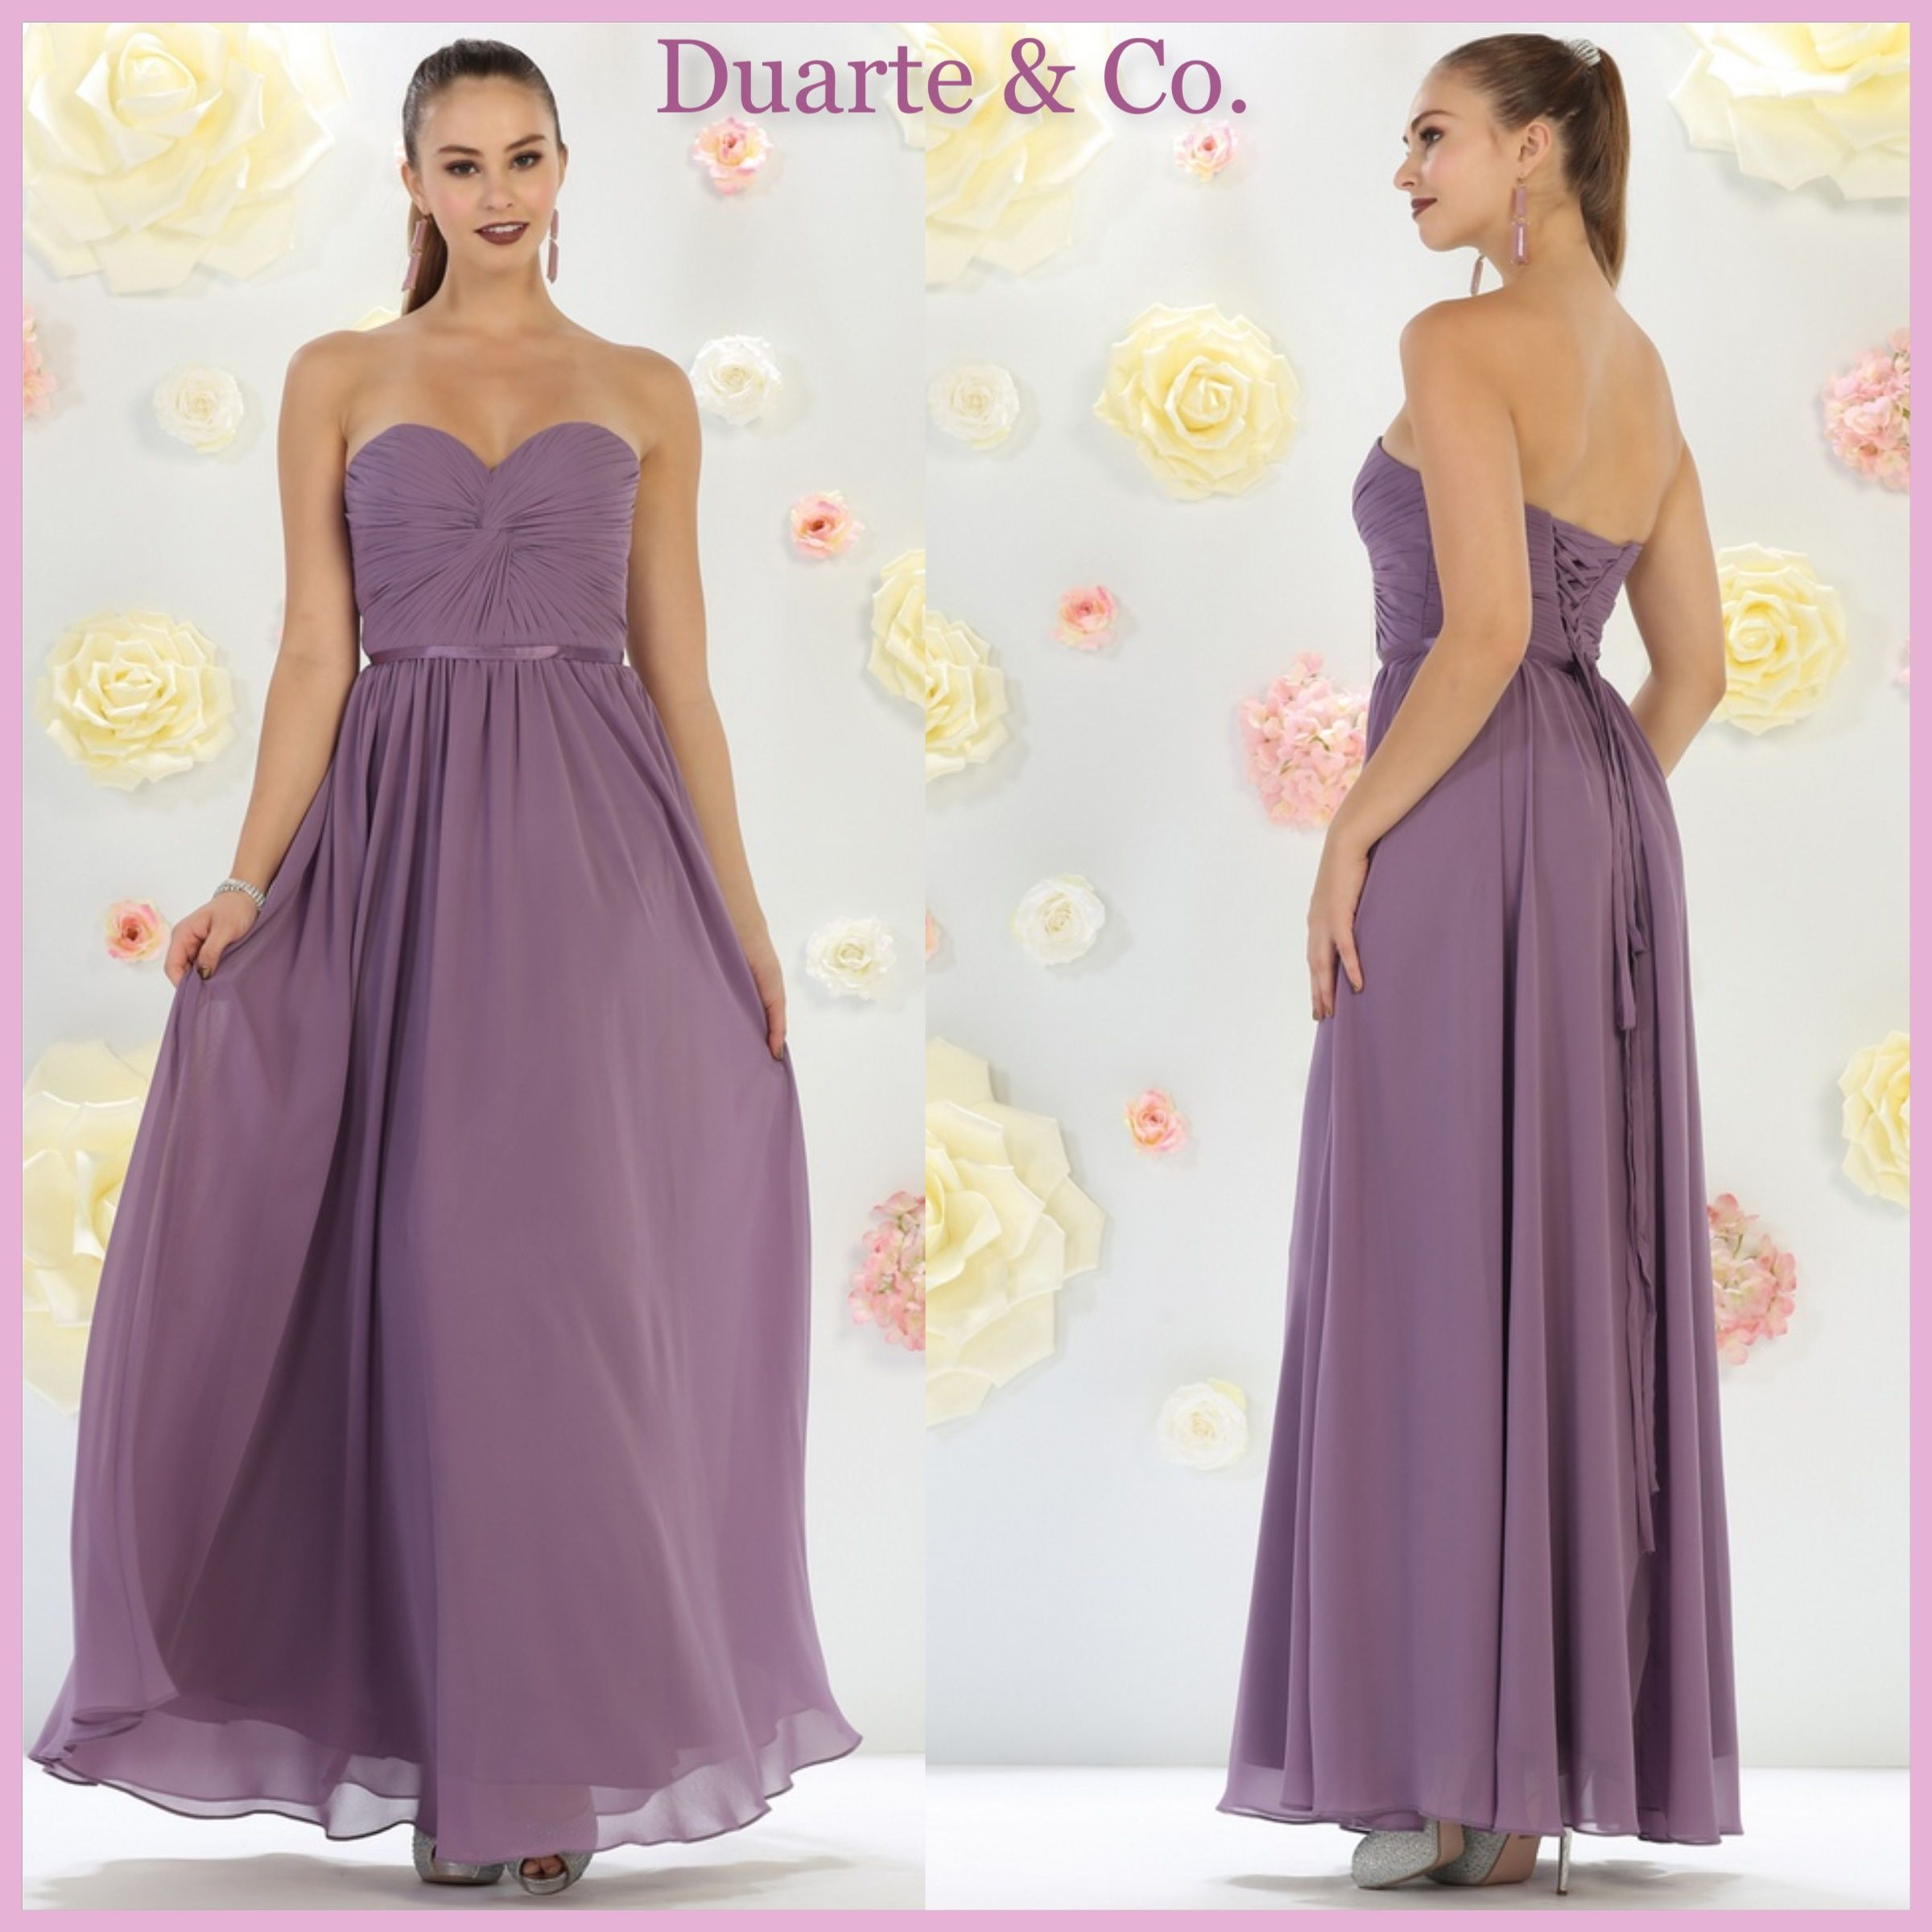 bbe7d16da2 LC211452  112.00 Strapless Chiffon Bridesmaid Dress W Plus Sizes Comes in  21 colors and is great for any special occasion. Available in PLUS SIZES 4  to size ...